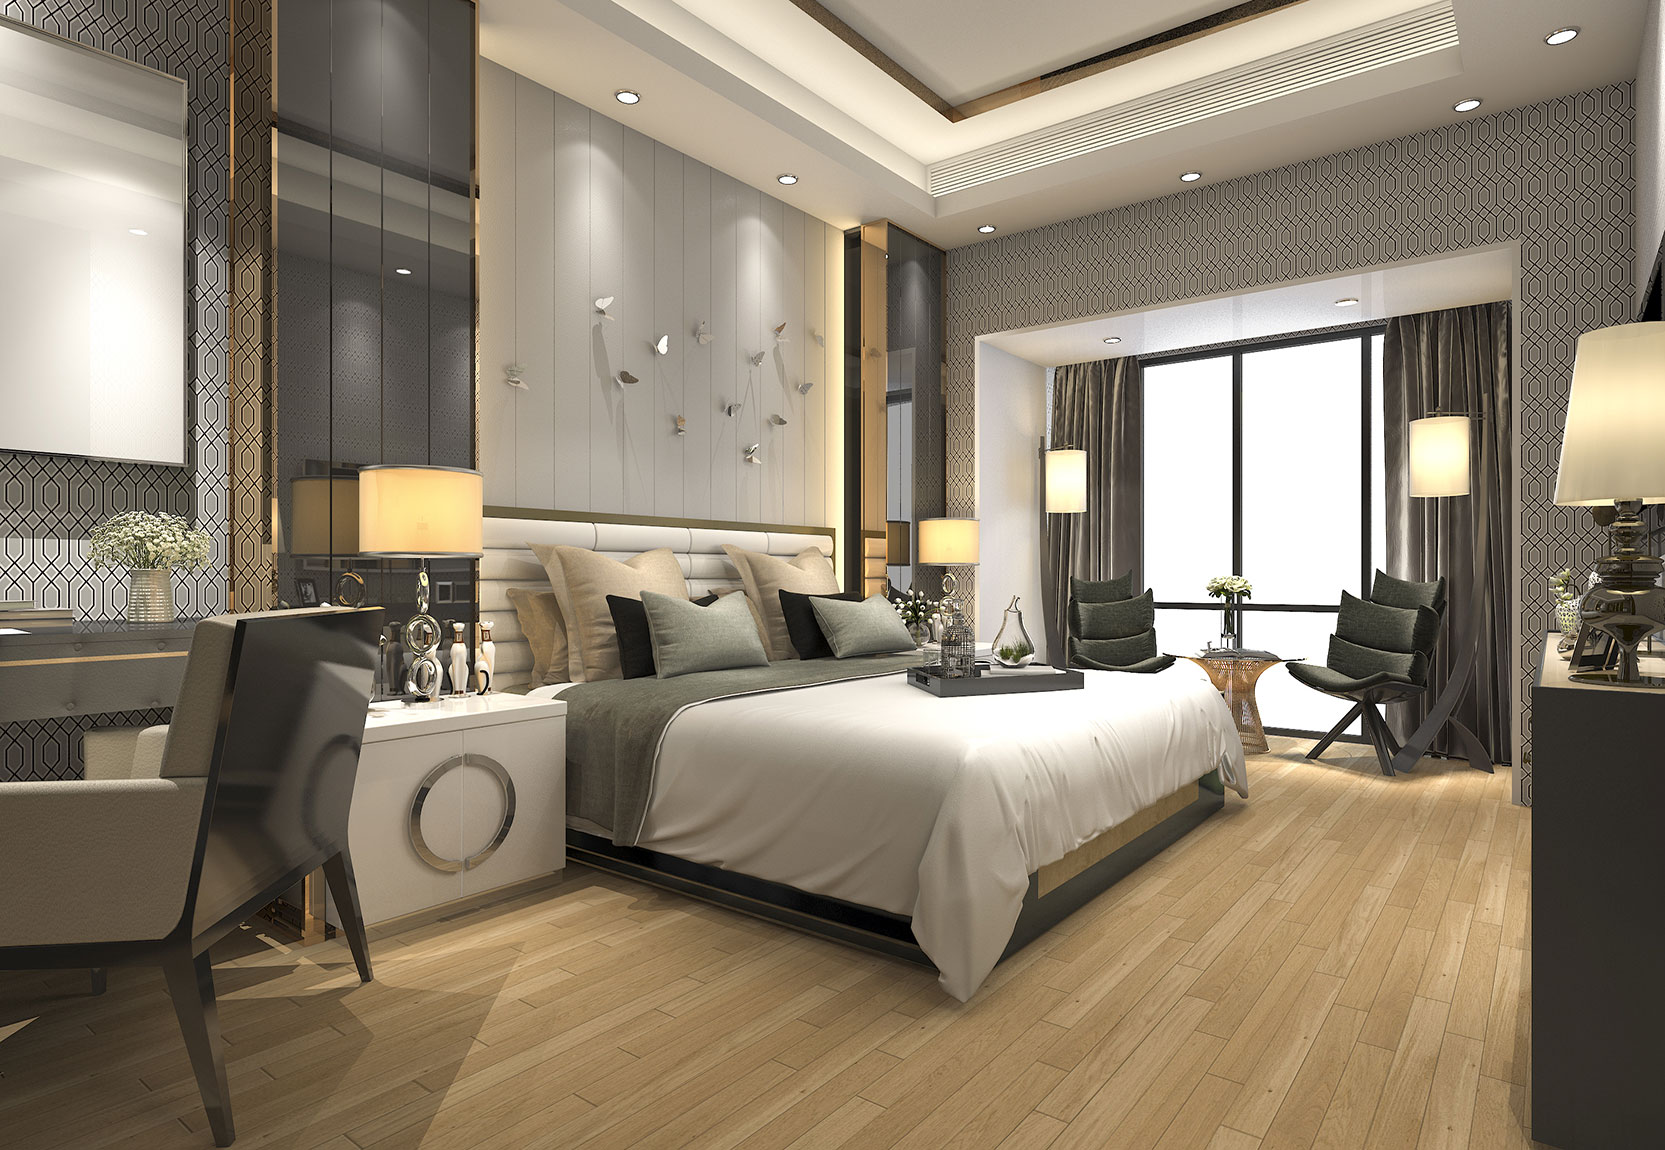 4 Interesting Solutions For Creating Luxurious Interior Design